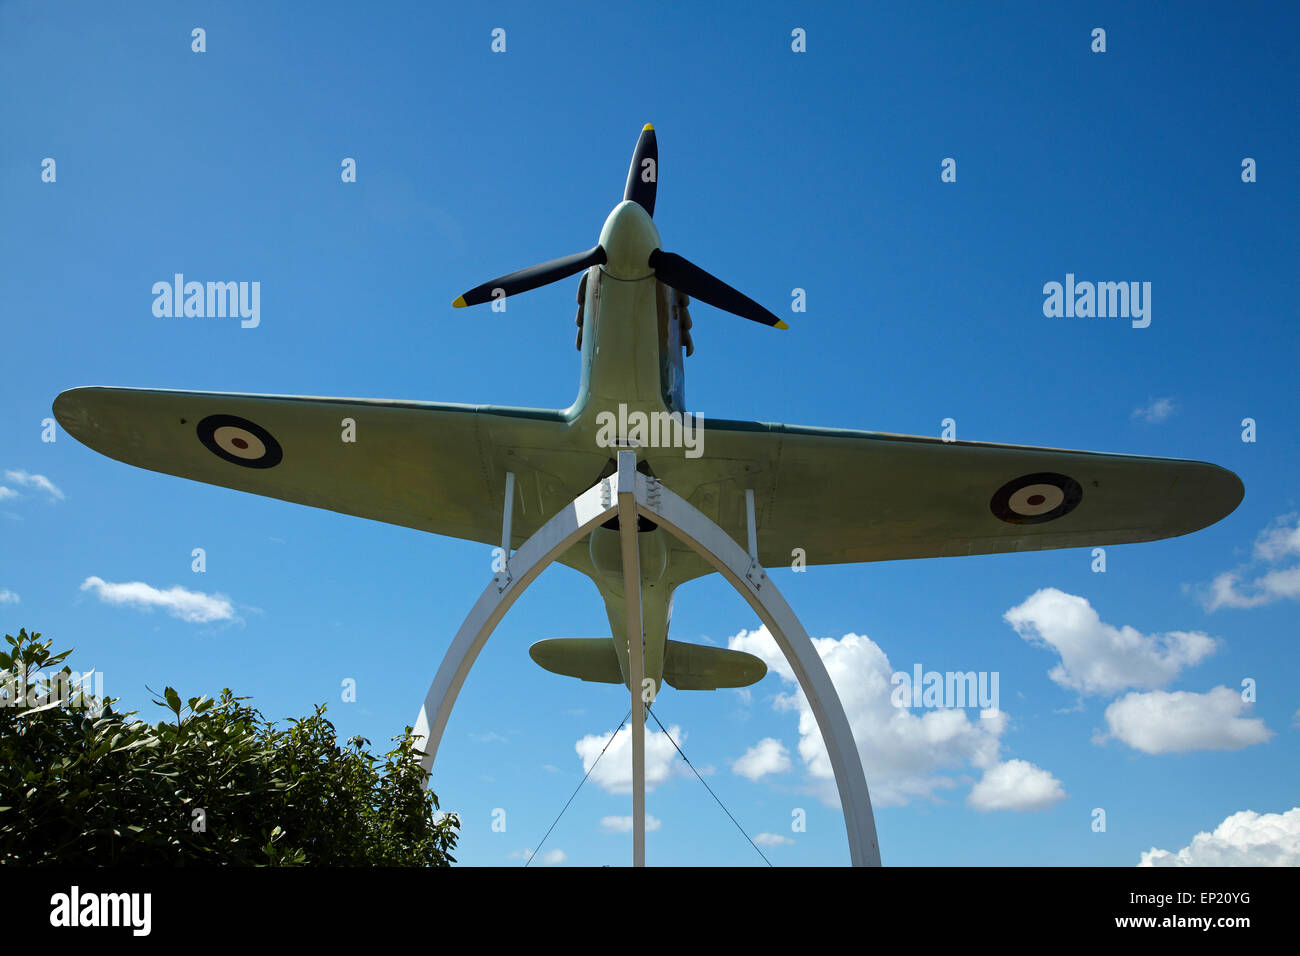 Hawker Hurricane fighter replica at MOTAT (Museum of Transport and Technology),  Auckland,  North Island, New Zealand - Stock Image